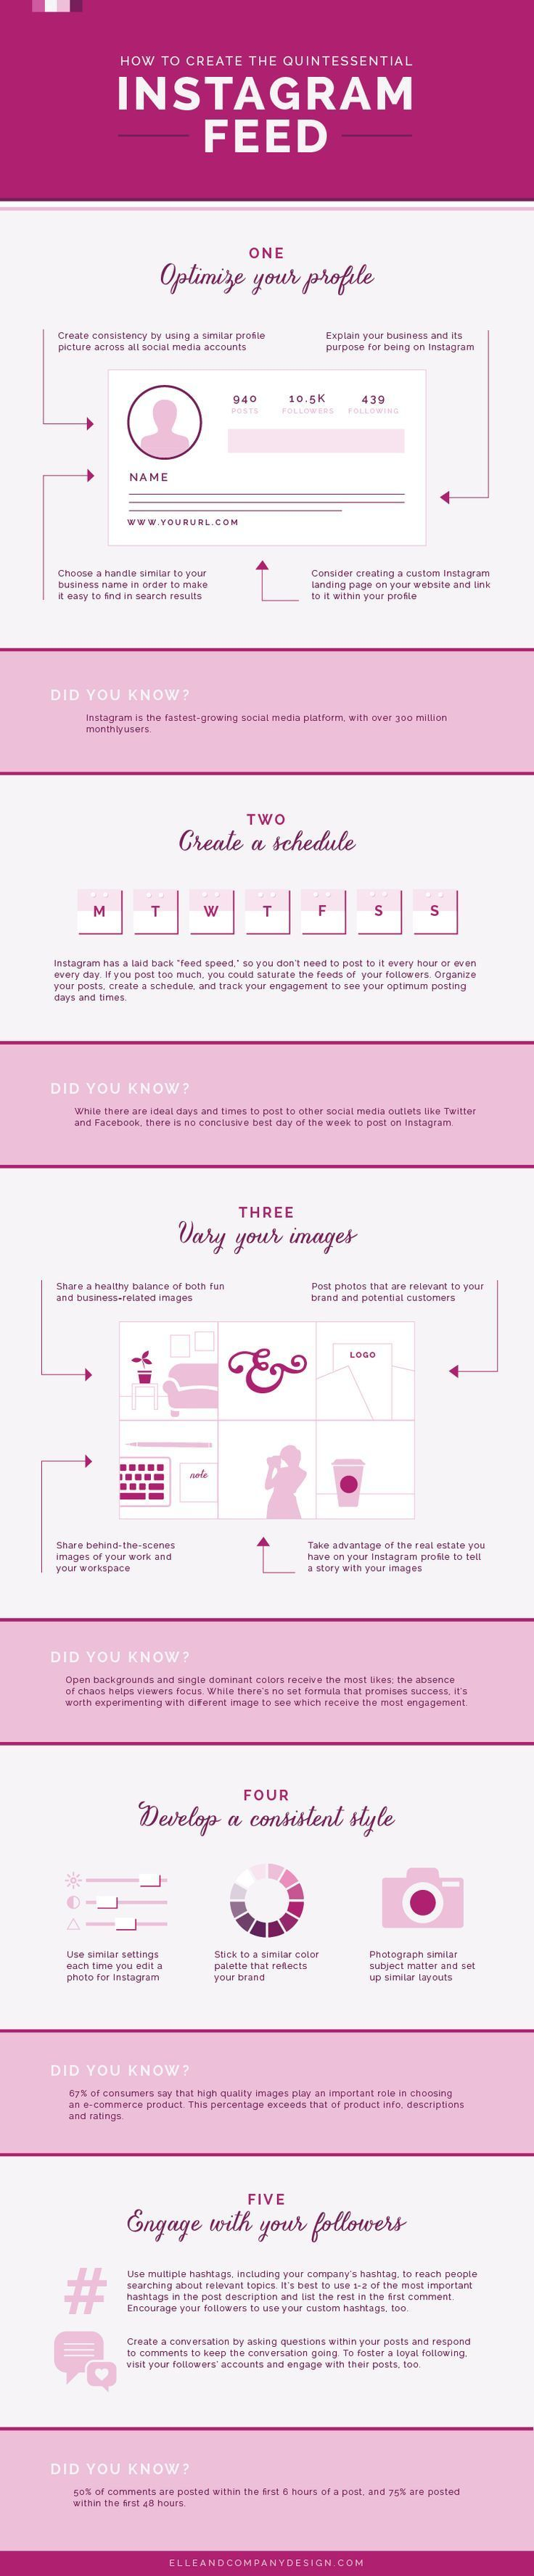 How to Create the Quintessential Instagram Feed - #infographic  #RePin by AT Social Media Marketing - Pinterest Marketing Specialists ATSocialMedia.co.uk